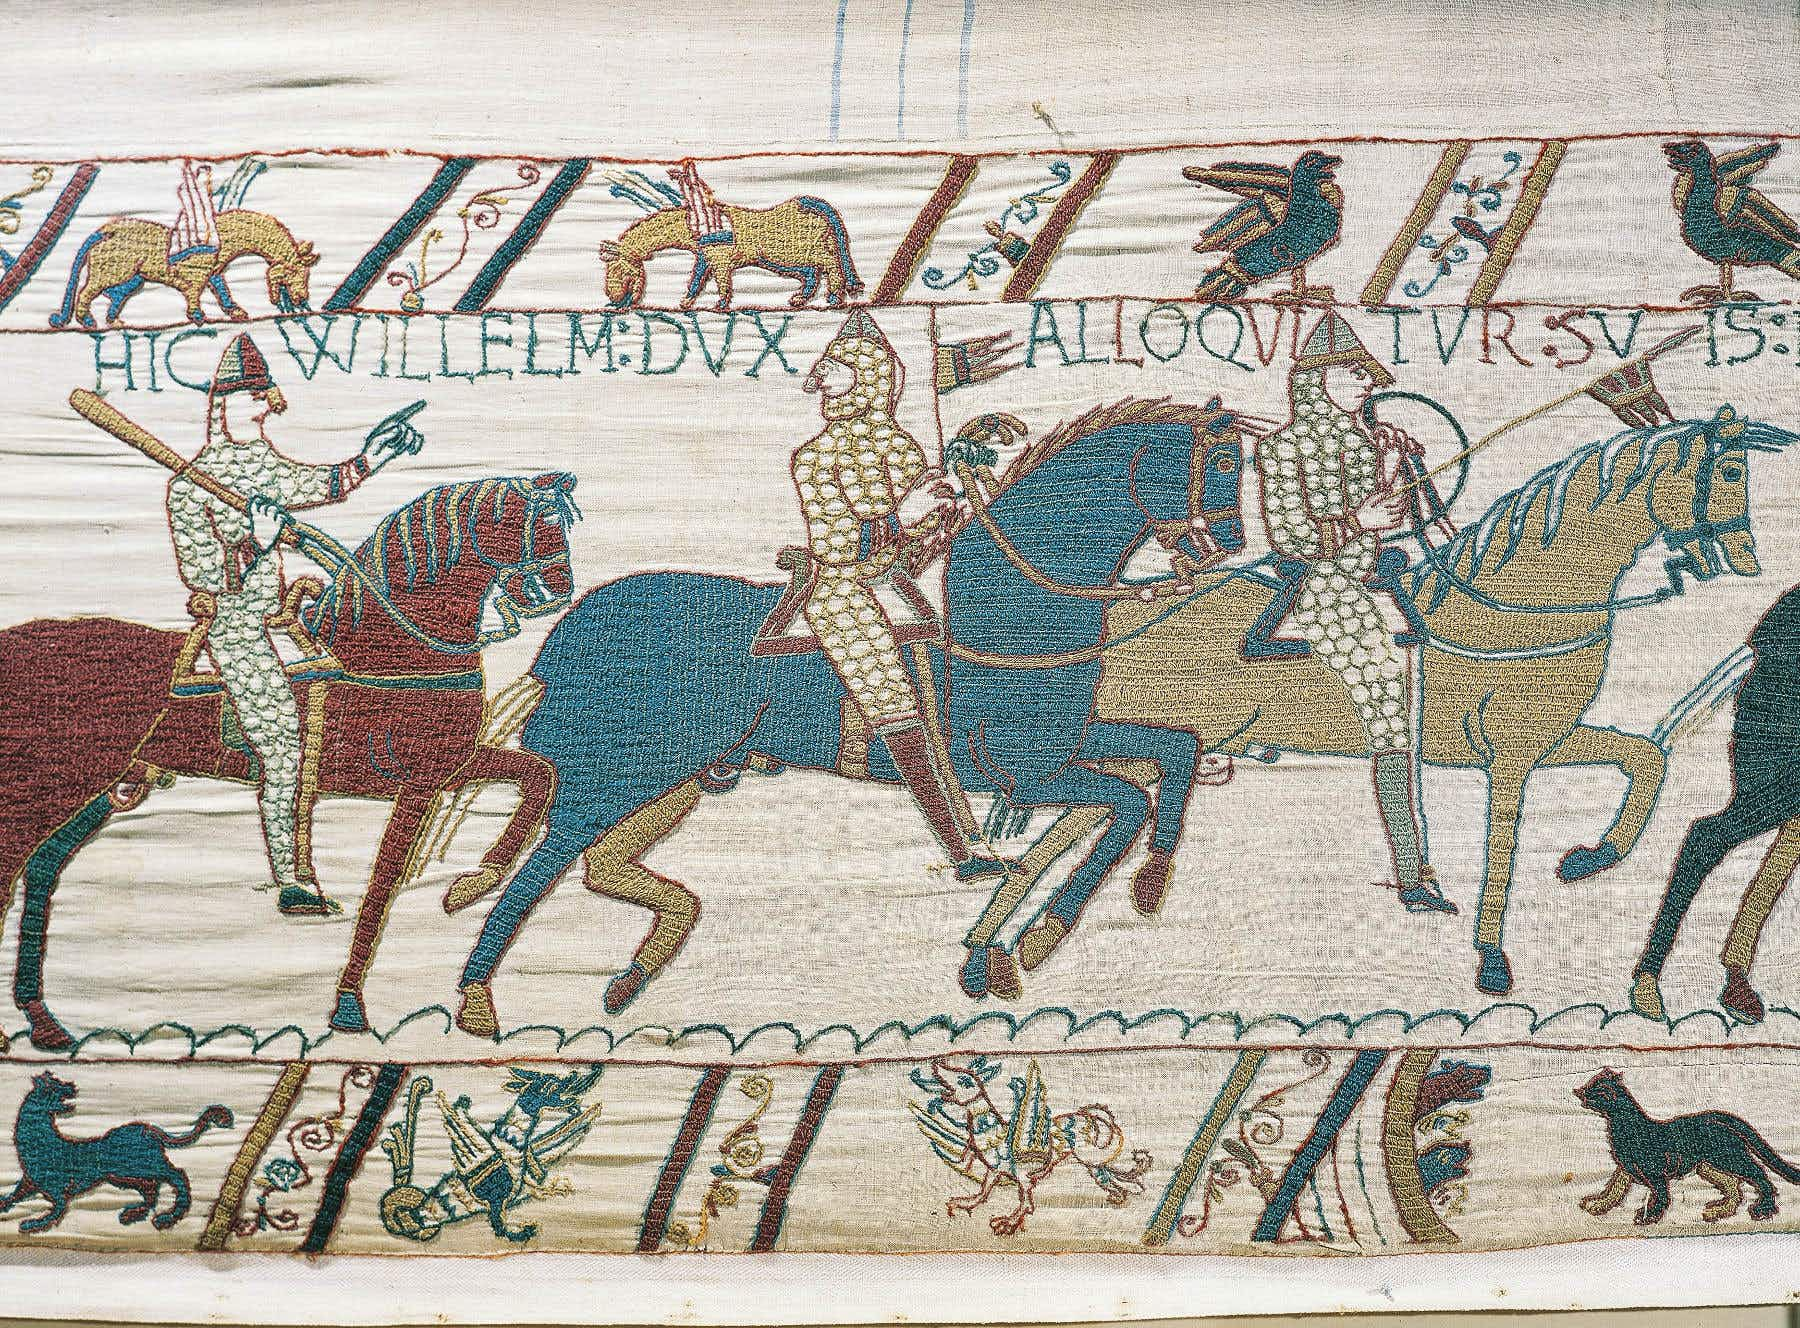 The Bayeux Tapestry will go on display in Britain for the first time